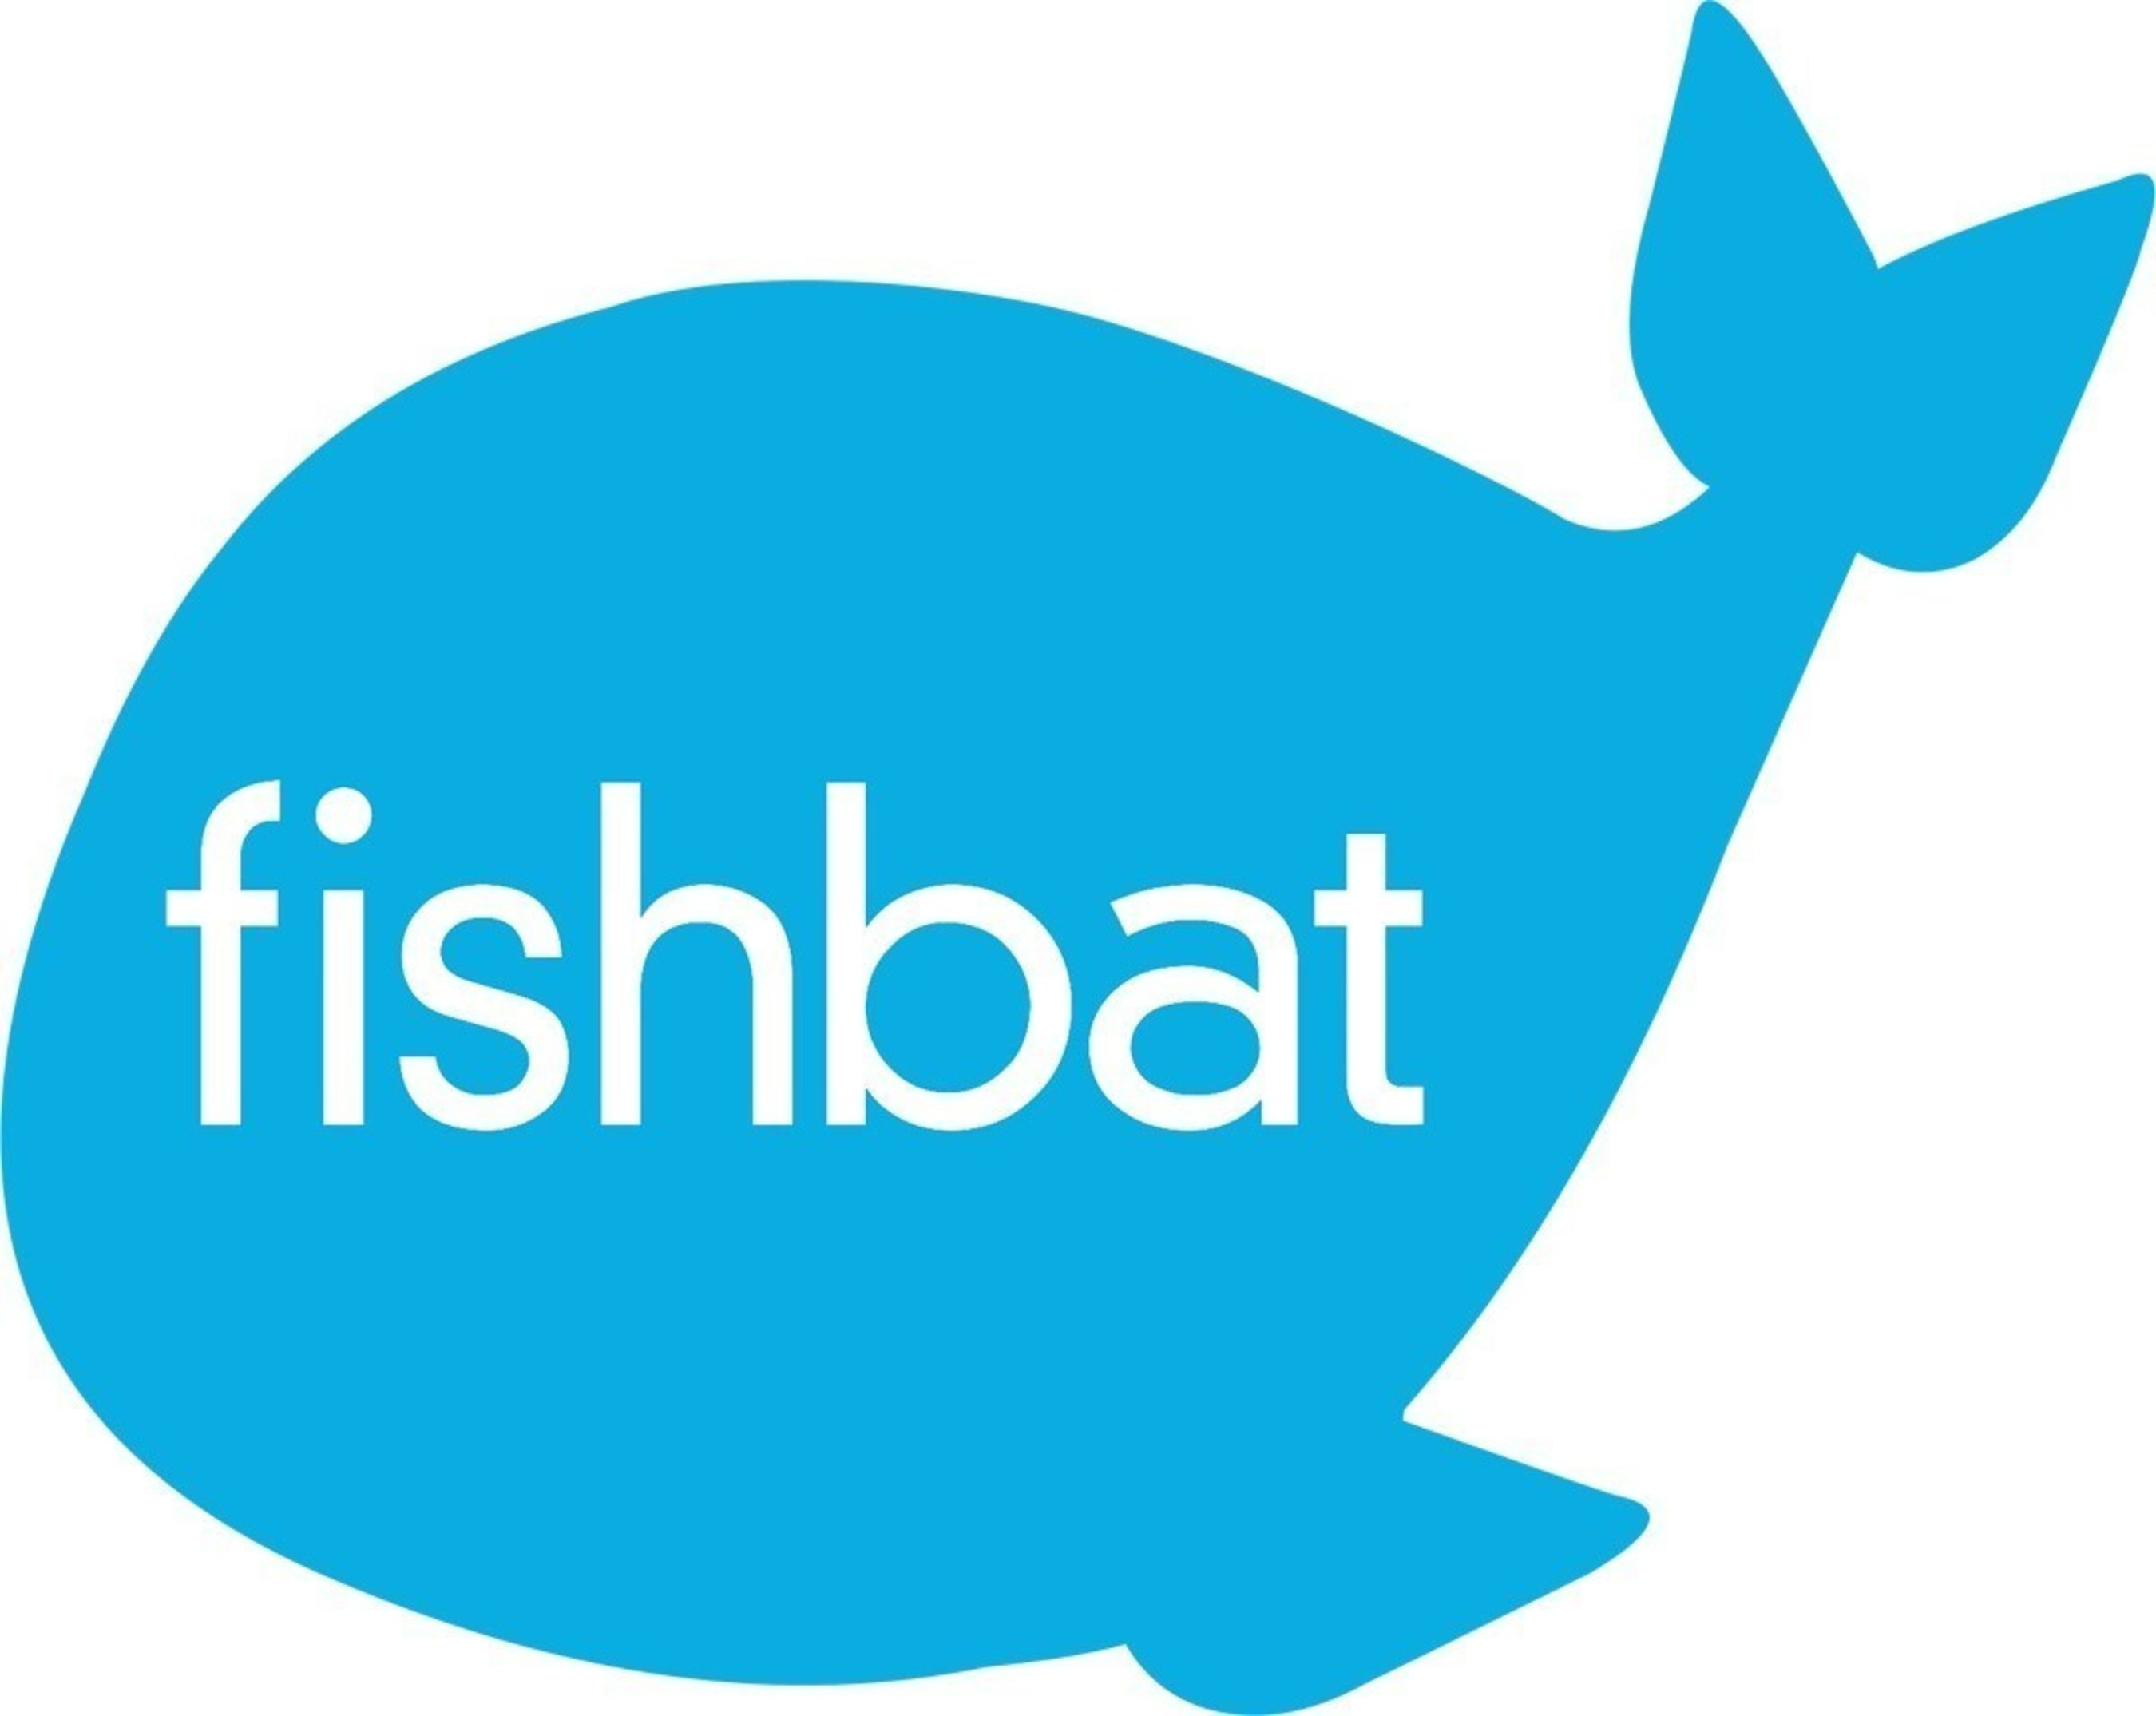 fishbat COO Scott Darrohn Explains 4 SEO Practices for Creating Quality Content